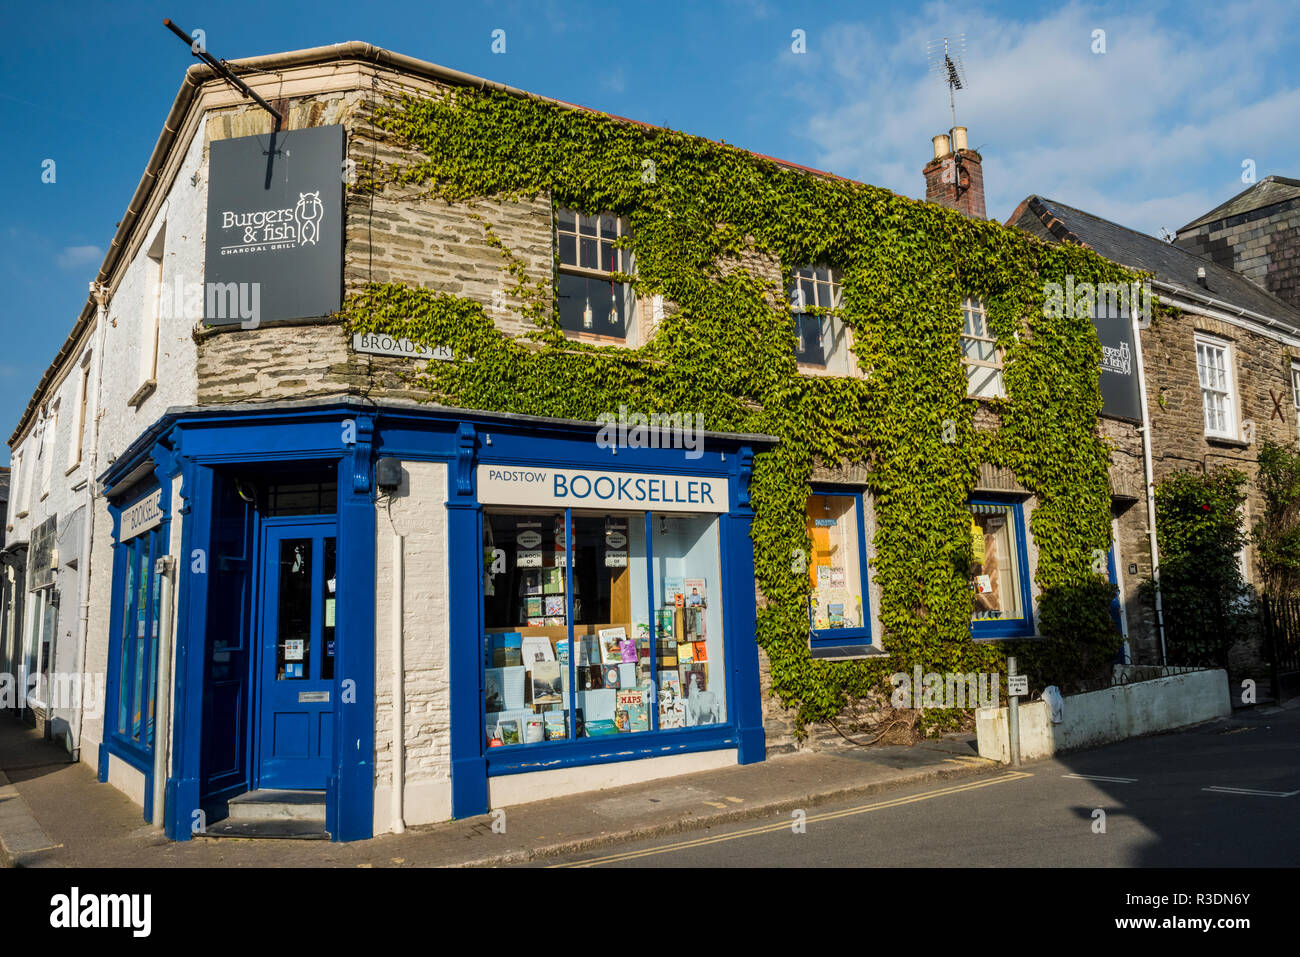 Padstow Bookseller, an ivy-covered bookshop on Broad Street in Padstow, Cornwall, England - Stock Image